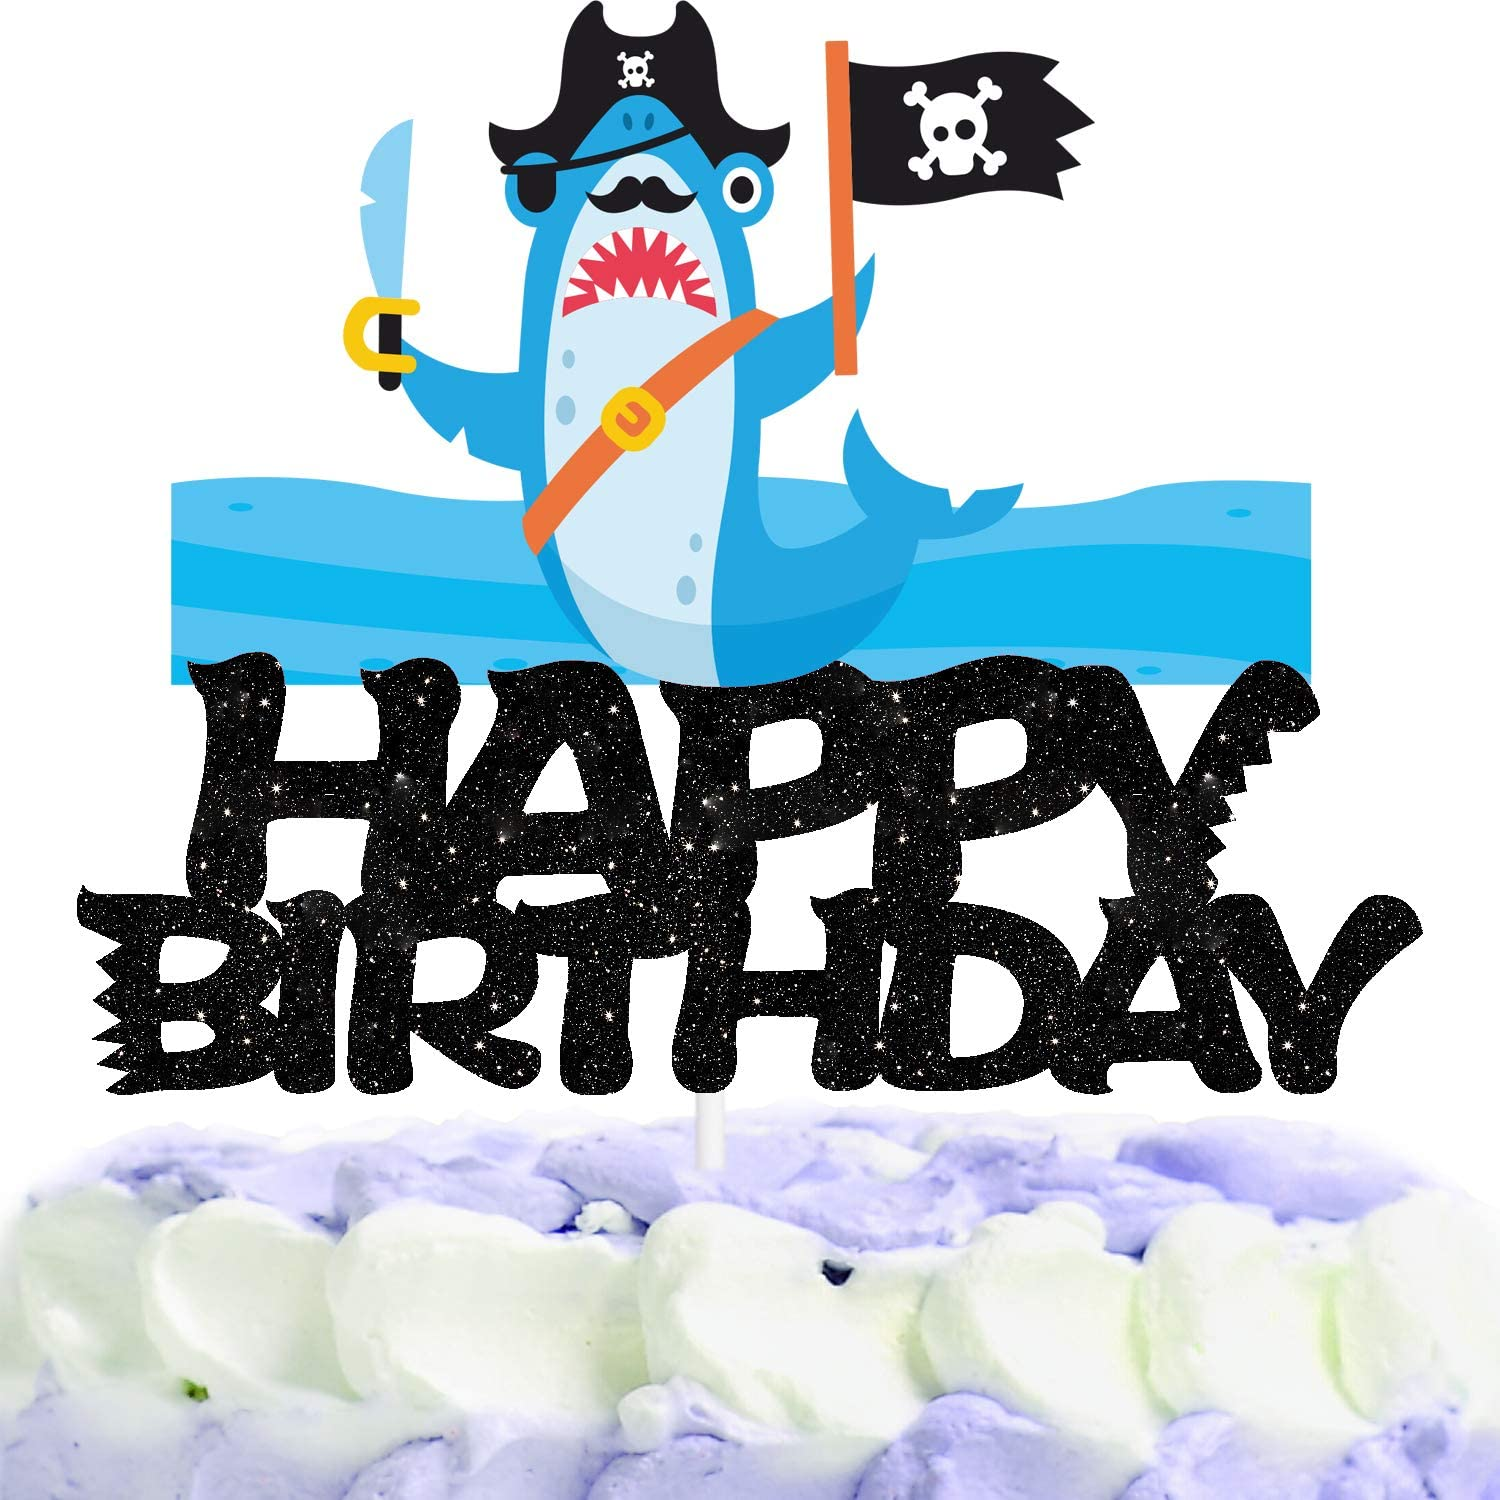 Pirate Shark Happy Birthday Cake Topper Decorations with Adventure for Birthday Theme Baby Shower Party Decor Supplies